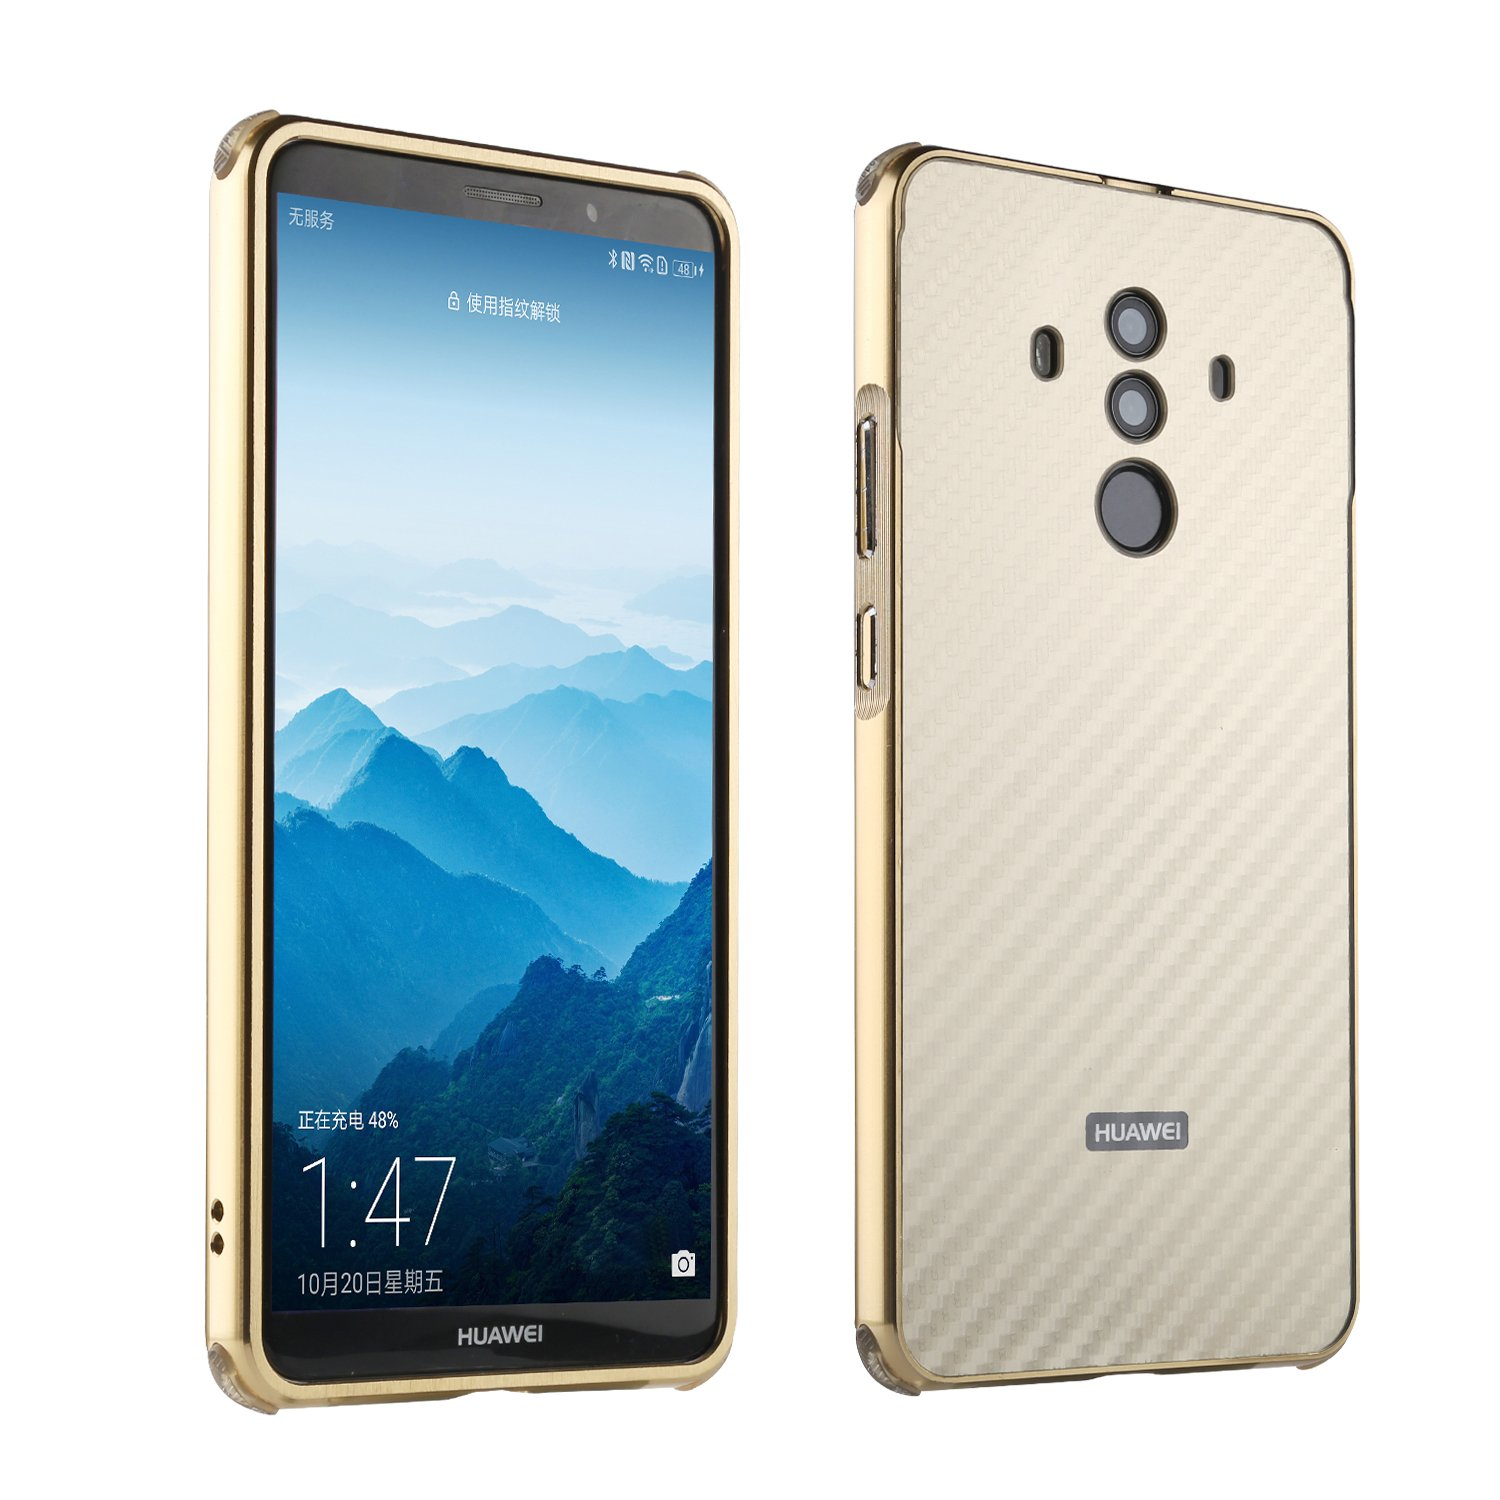 Mate 10 Pro Case,DAMONDY Luxury Carbon Fiber Design Ultra thin Imitation Metal Brushed Premium Aluminum Shockproof Protective Bumper Hard Back Case Cover for Huawei Mate 10 Pro-Gold